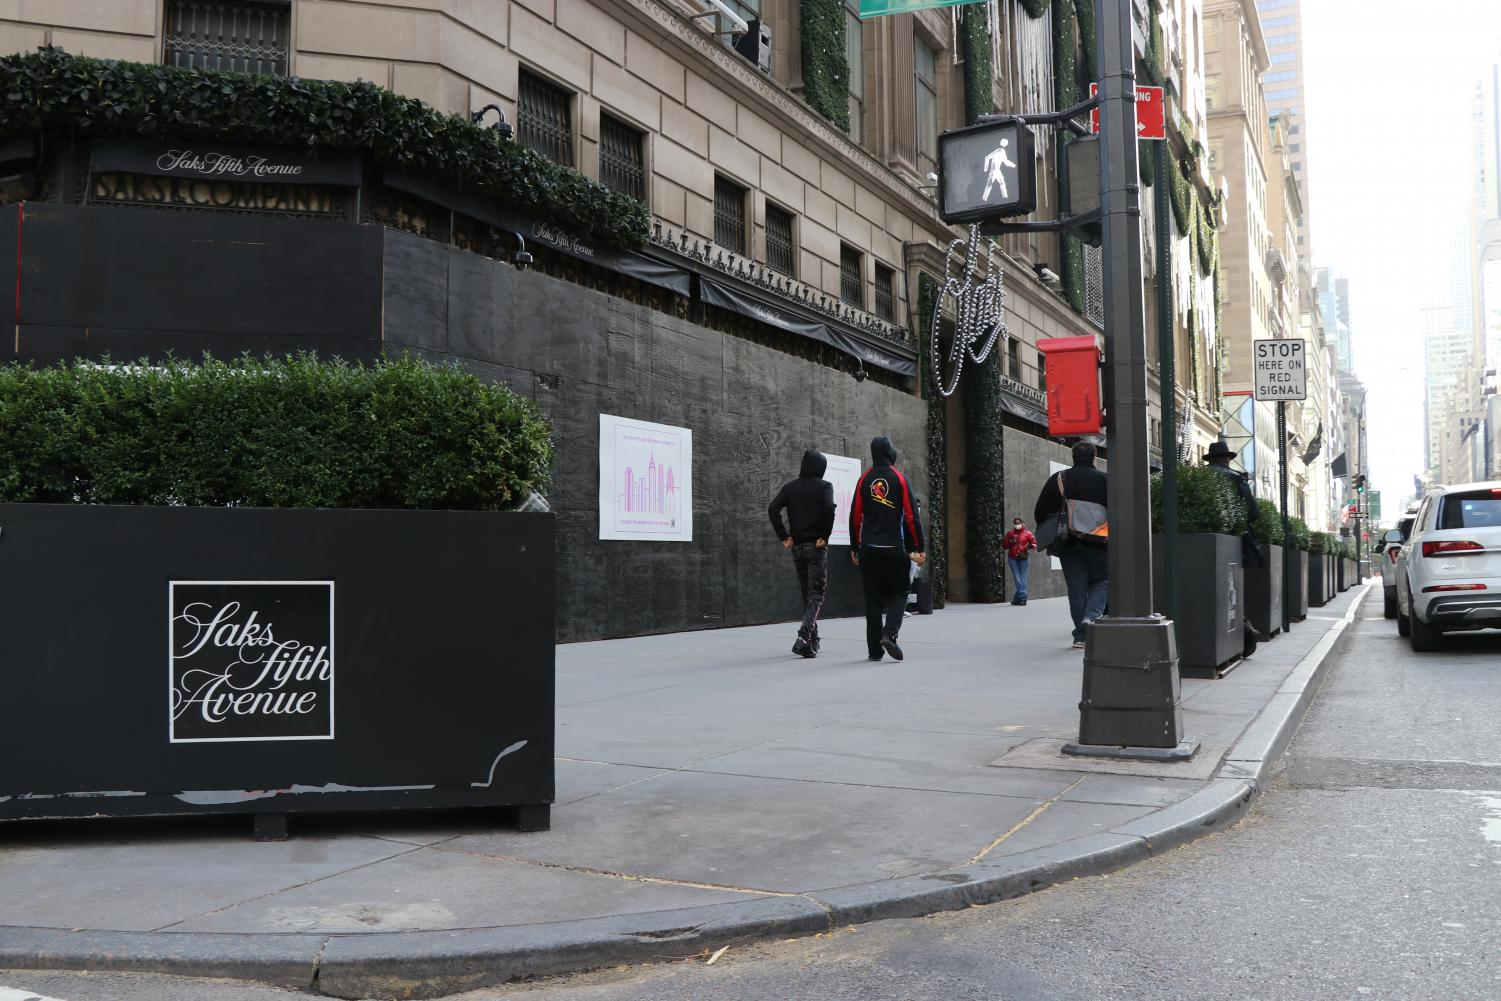 the storefront of Saks Fifth Avenue entirely covered in black boards